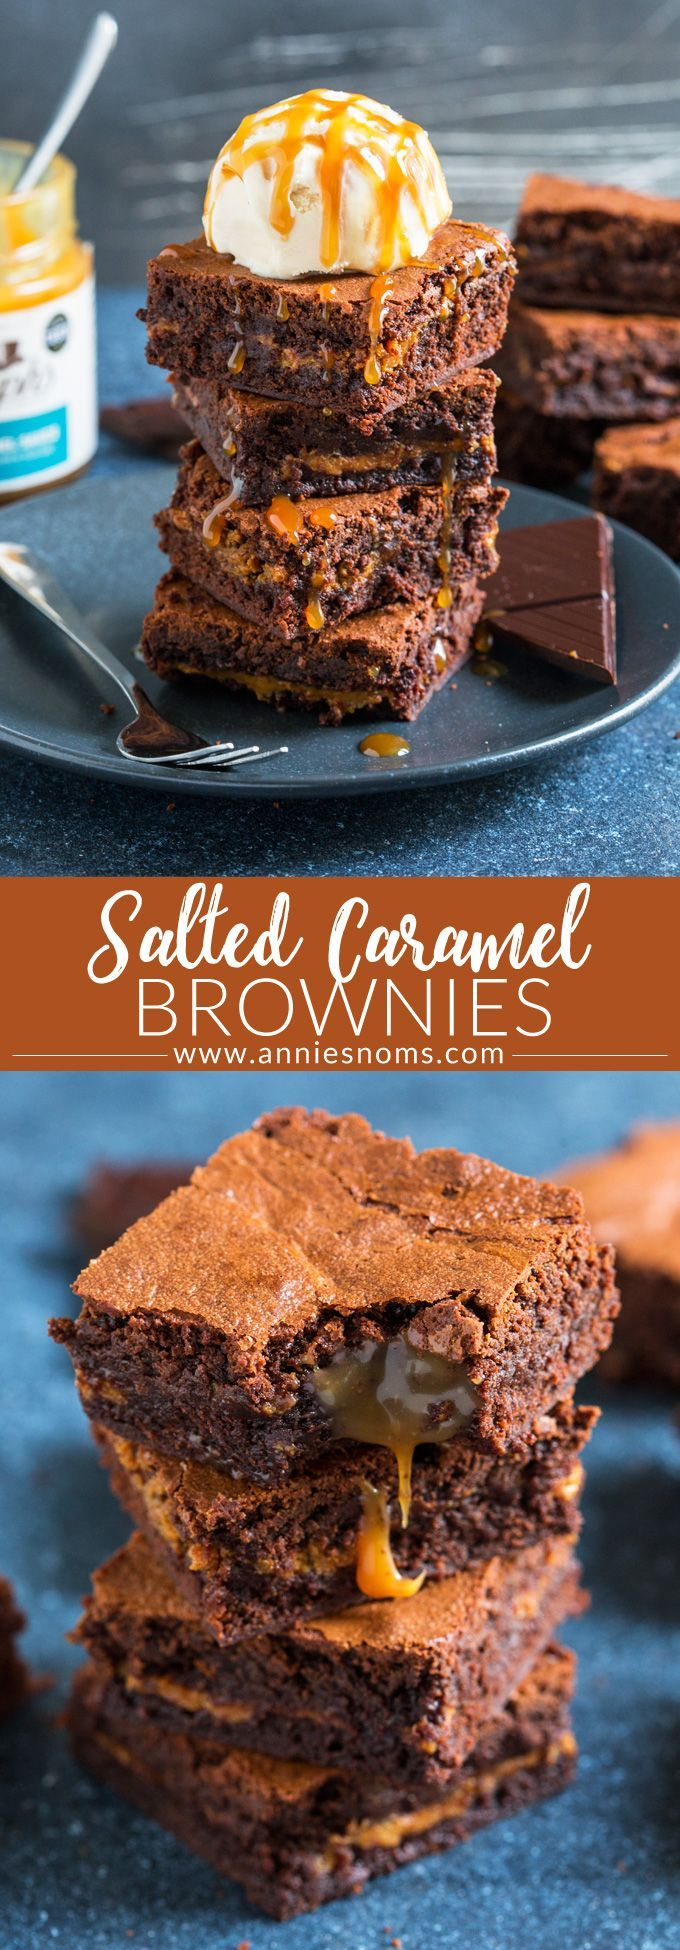 What could make rich and fudgy brownies better? A layer of salted caramel of course! These Salted Caramel Brownies are the stuff of dreams!